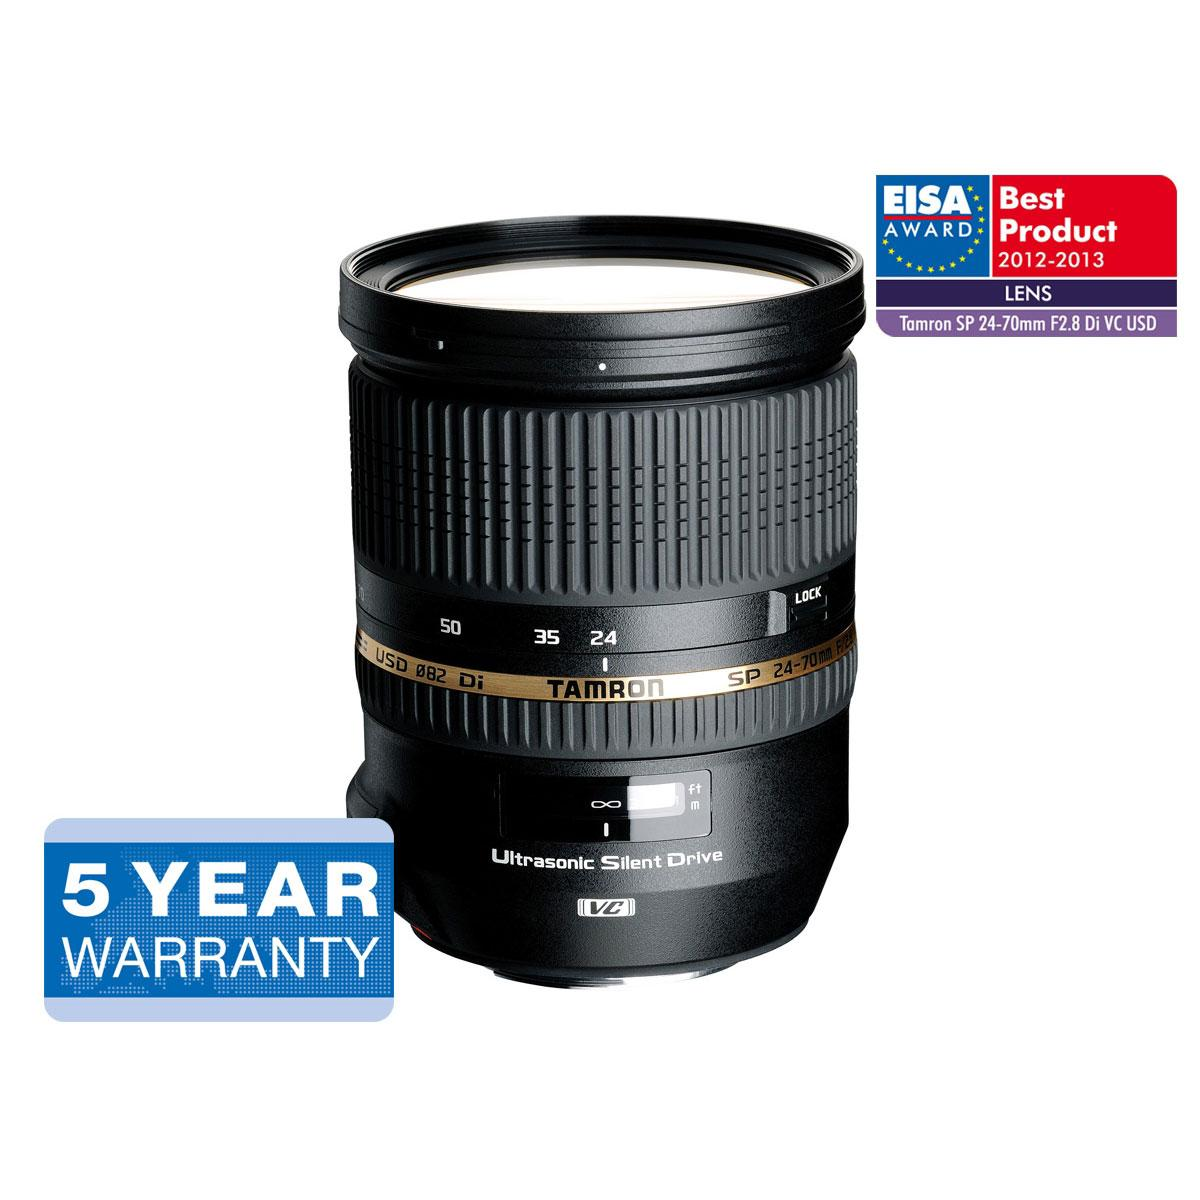 Tamron SP 24-70mm F2.8 Di VC USD – Canon